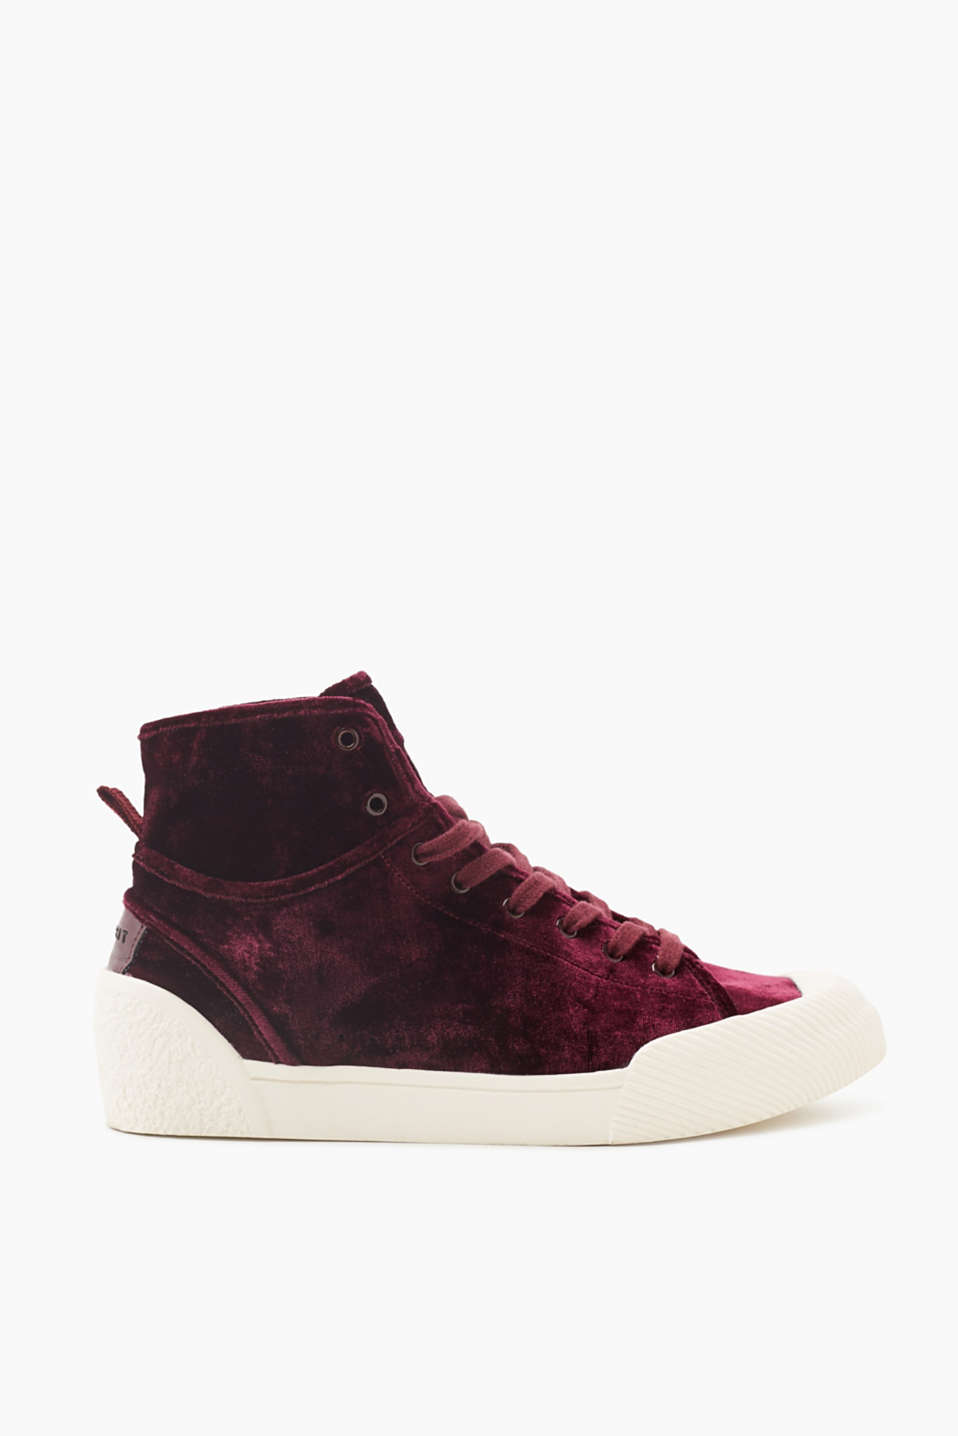 We love trainers! These high-top trainers are bound to impress with their velvet fabric and intense colour tones.